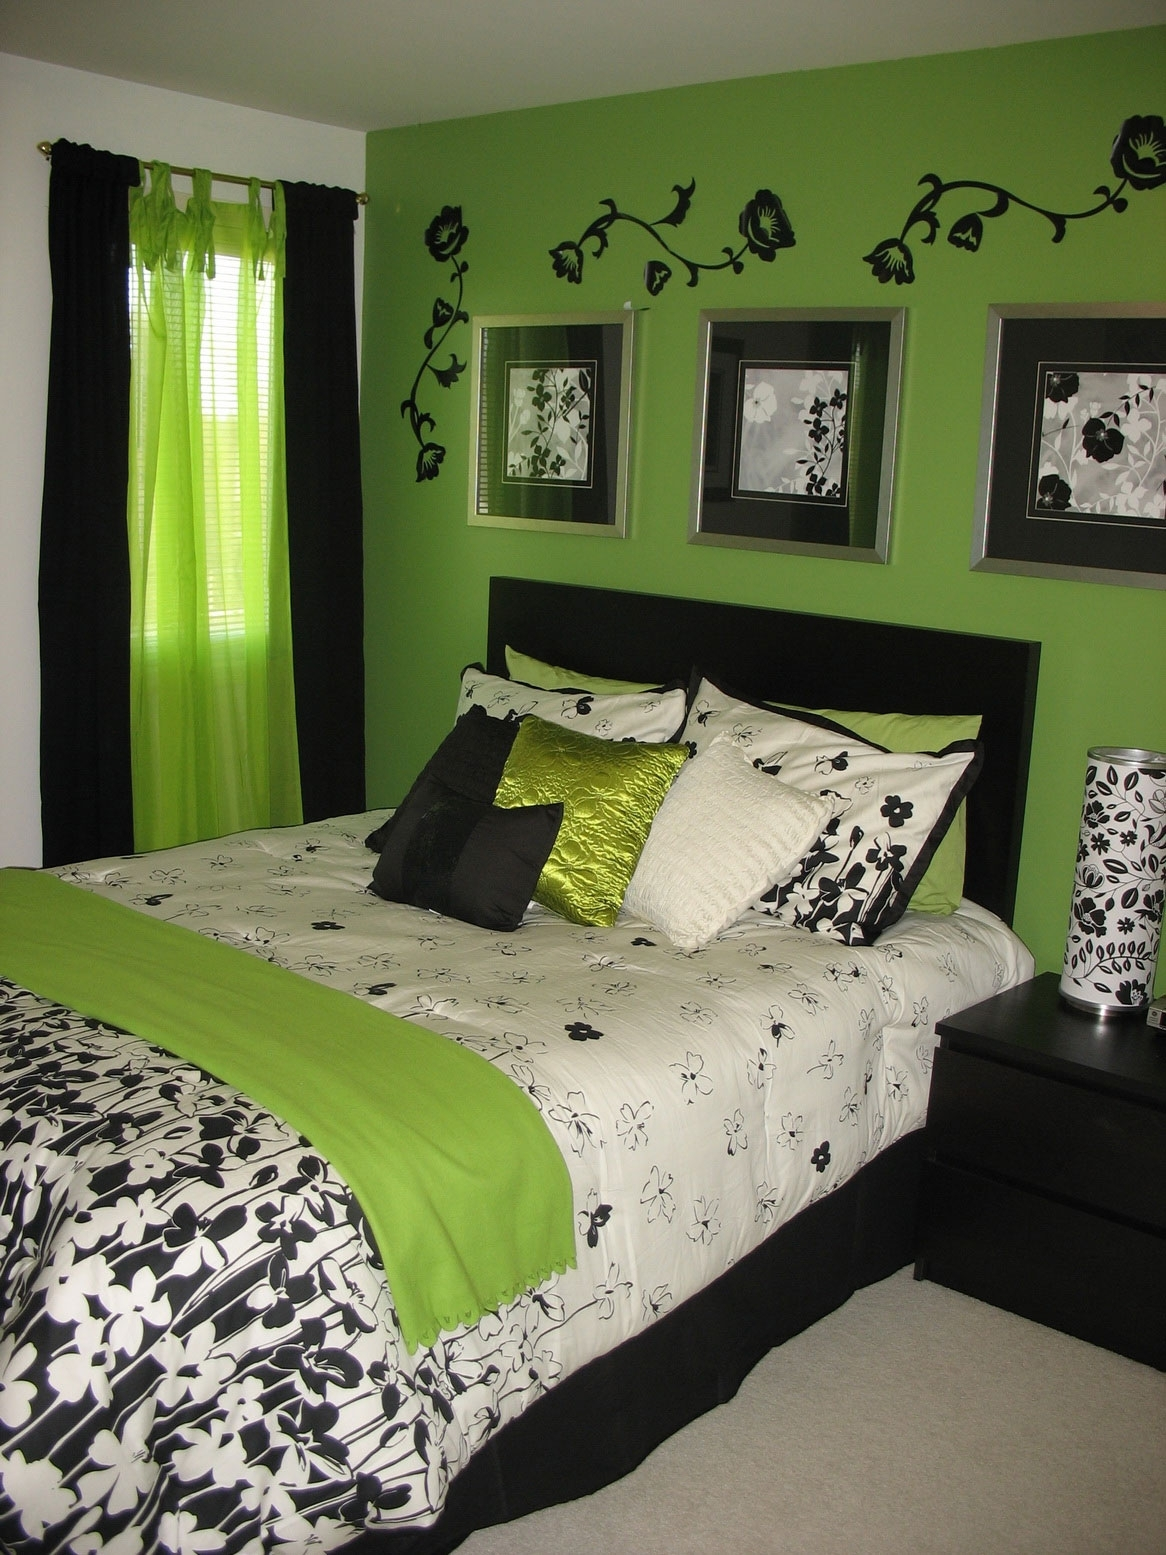 Bedroom : Beauteous Small Green Bedroom Wall Decor Ideas With Regarding Most Recent Green Room Wall Accents (View 2 of 15)